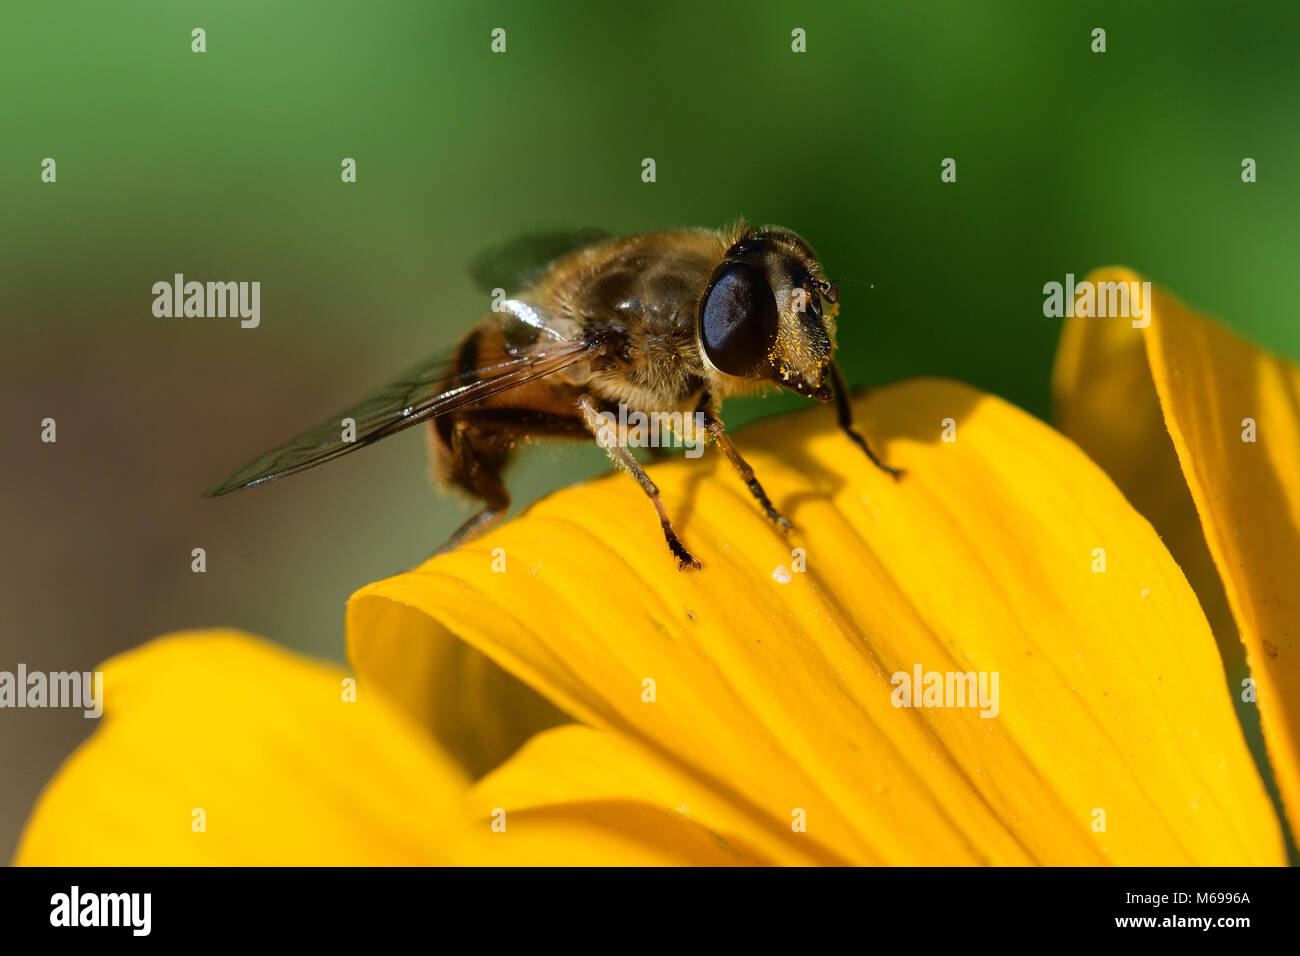 Macro shot of a bee on the petal of a yellow flower - Stock Image